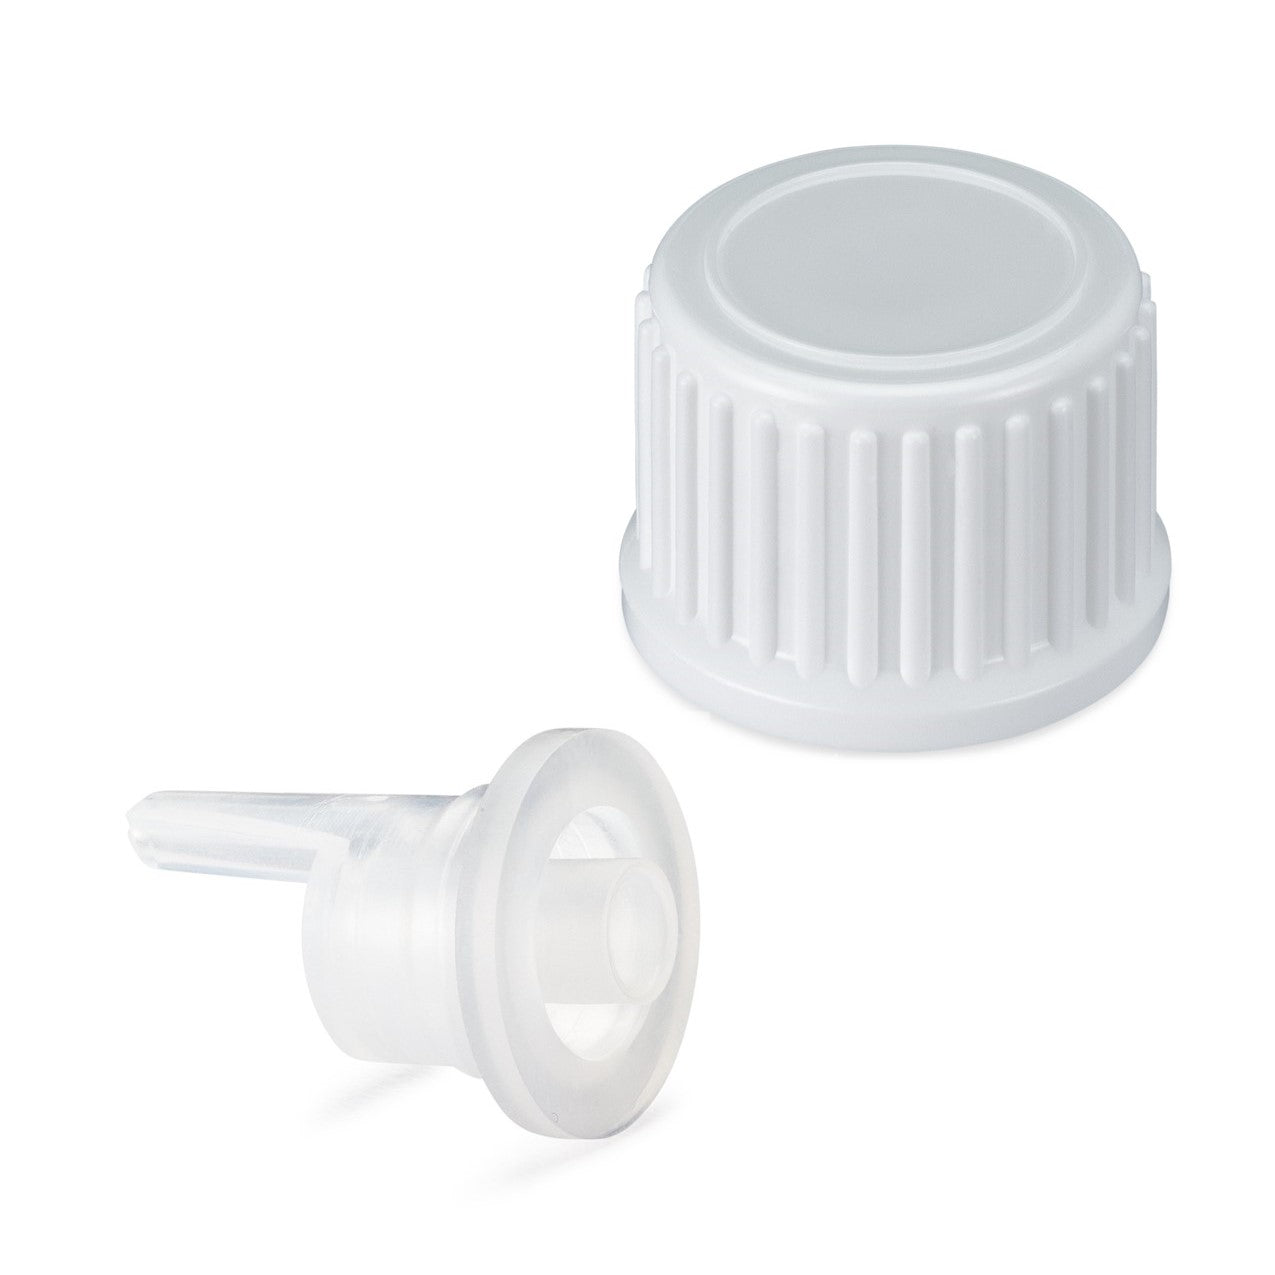 *USA* Regular EuroDrop® Cap assembled to 0.7mm Vertical Dropper Insert